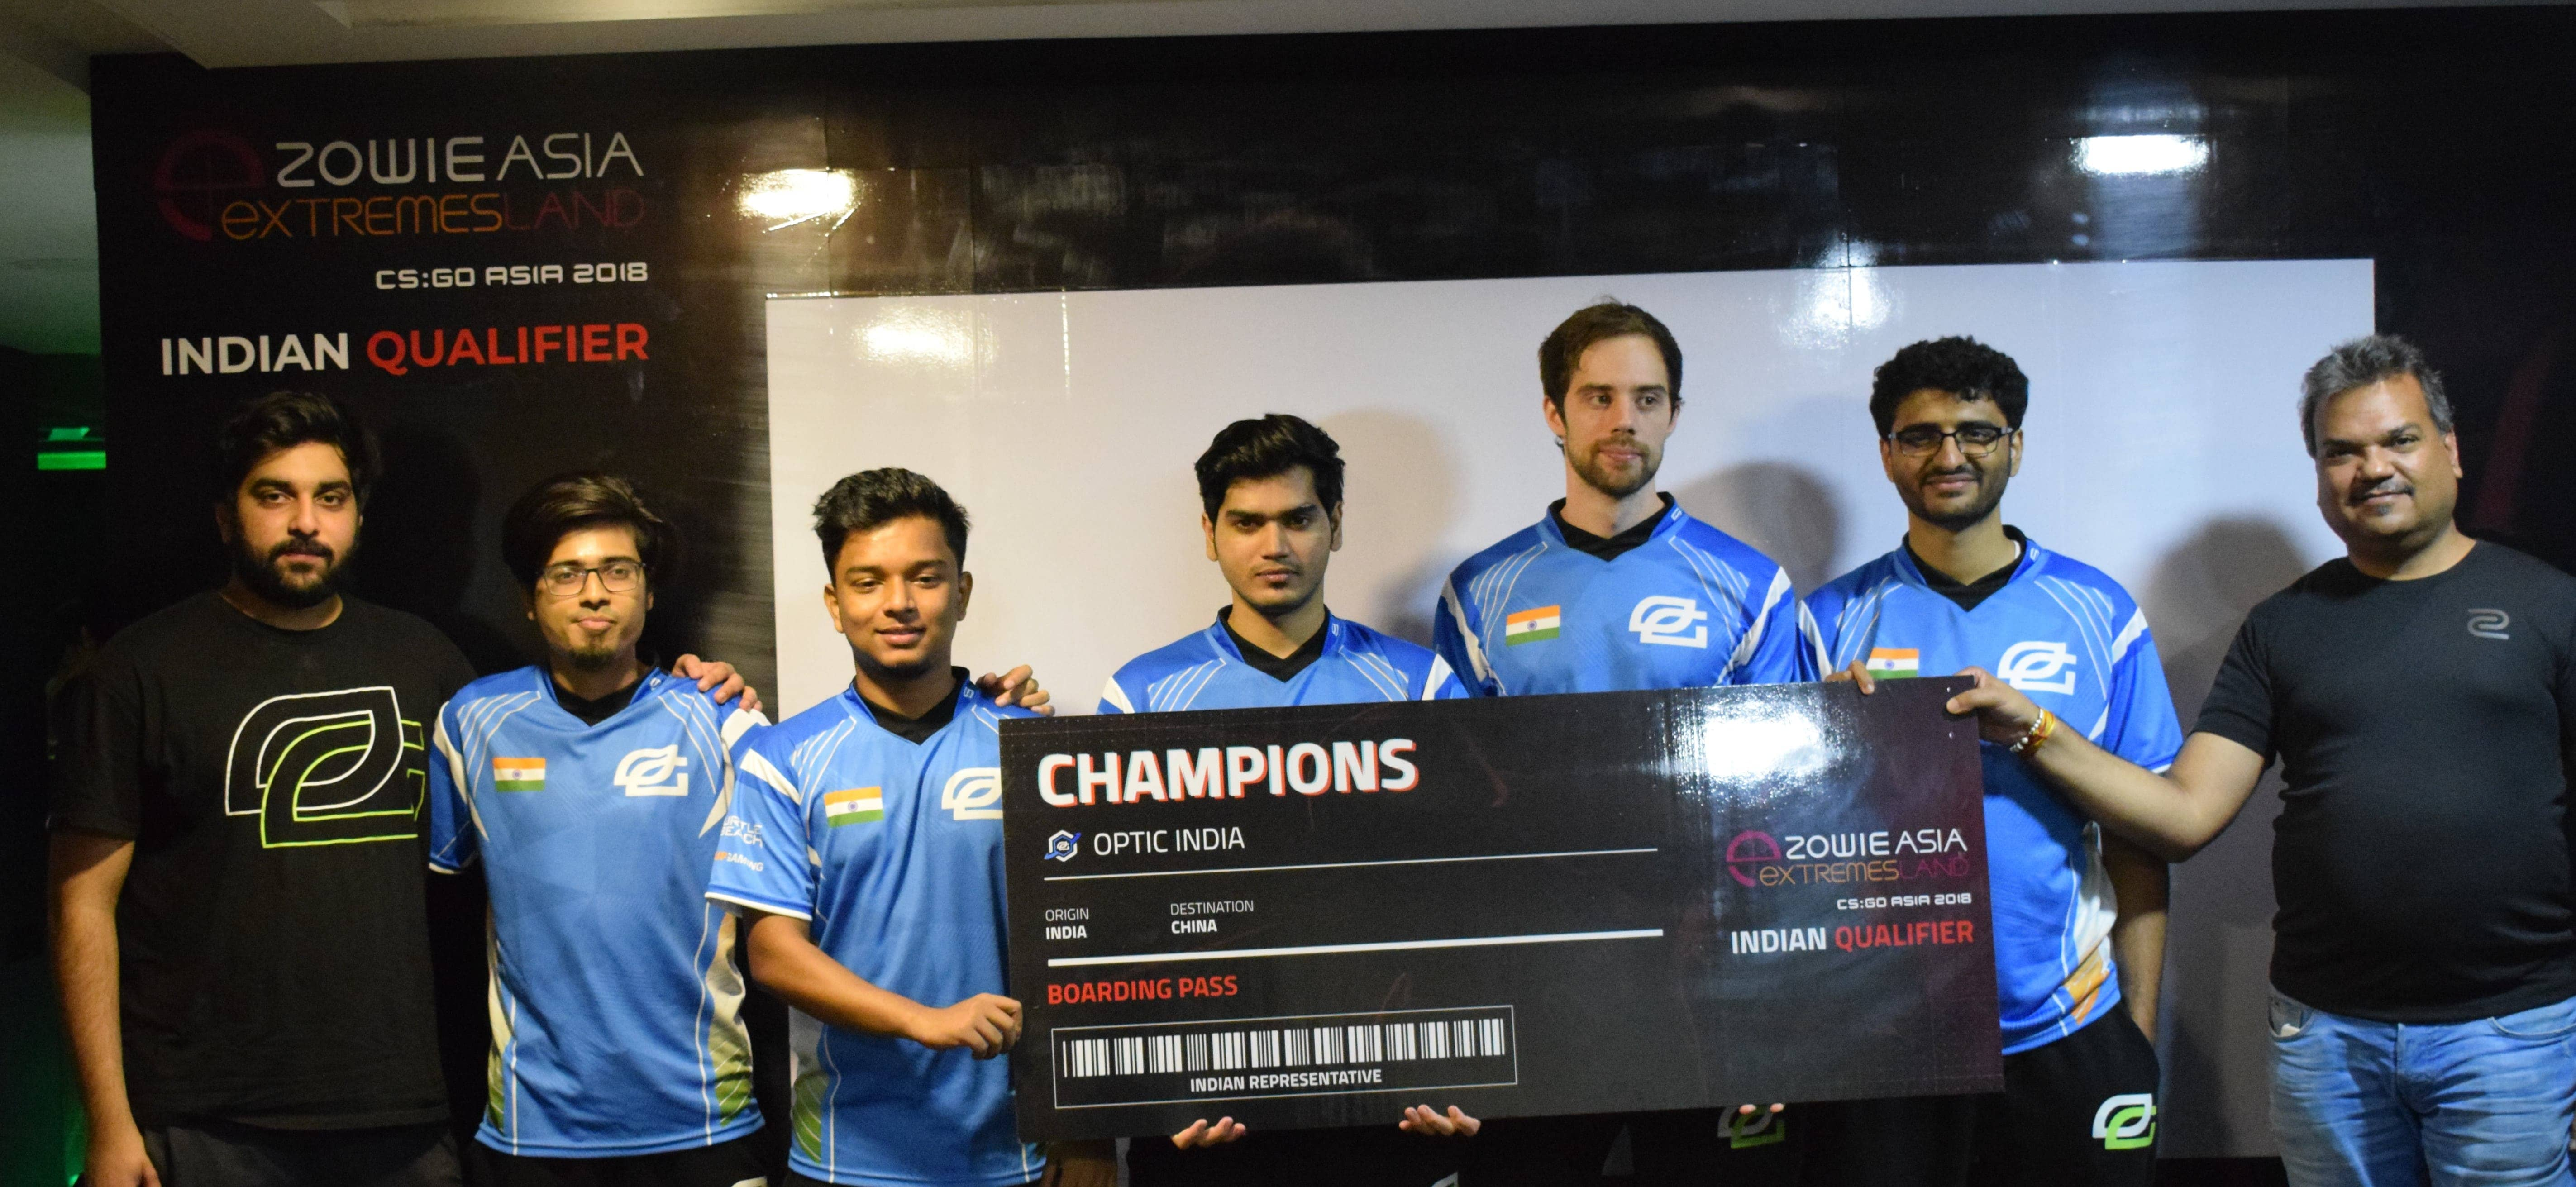 OpTic India Steamroll Their Way Into the Finals of ZOWIE Asia CSGO Extremesland 2018 at Shanghai